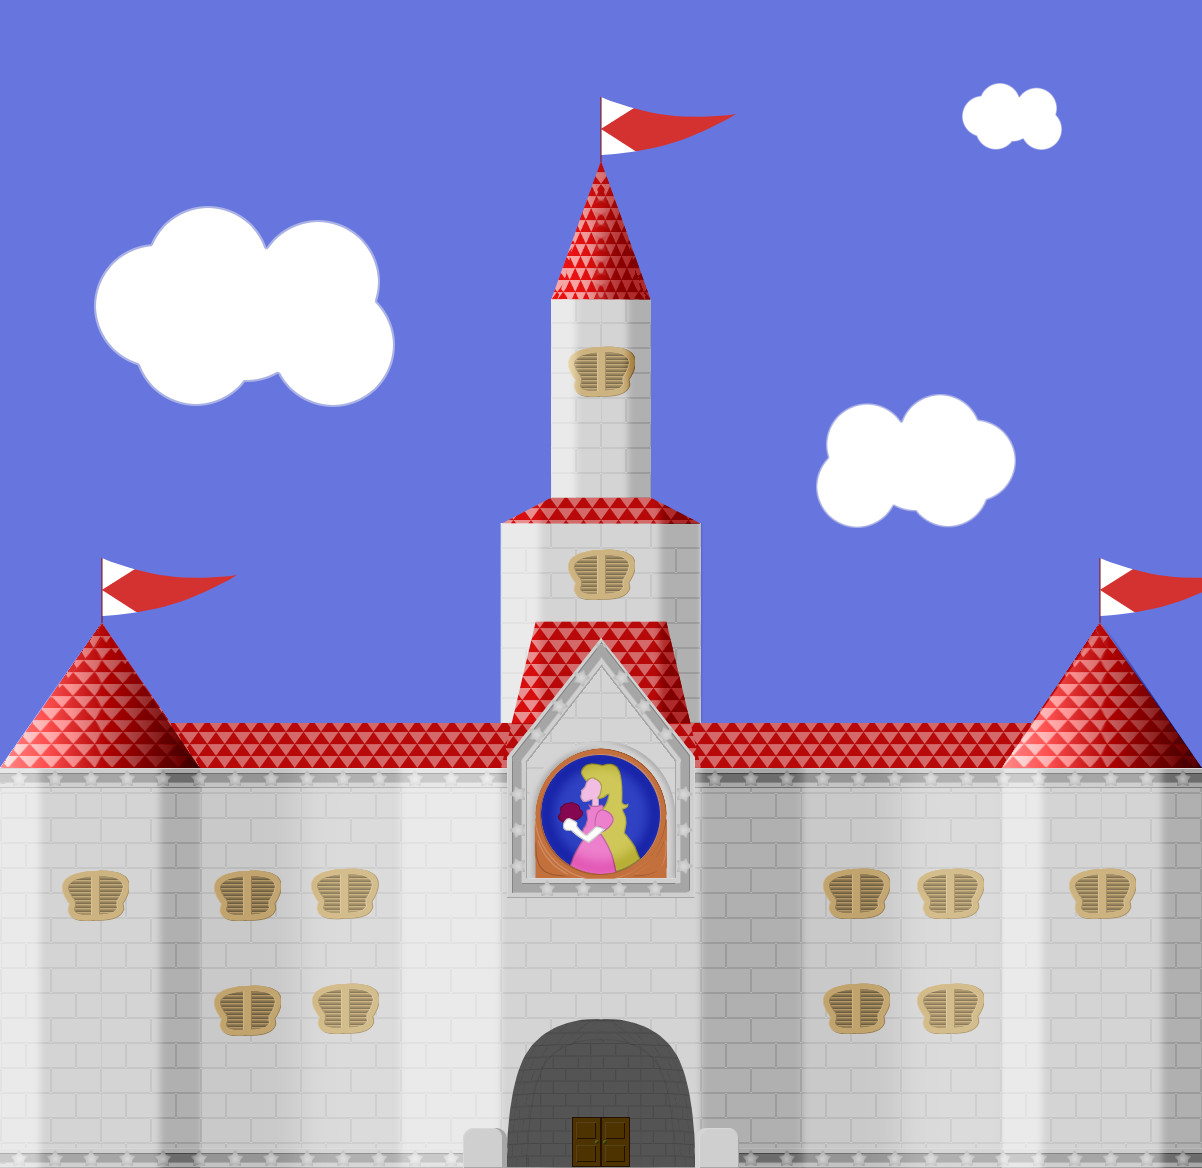 Princess Peach S Castle By Insanity Prevails On Deviantart